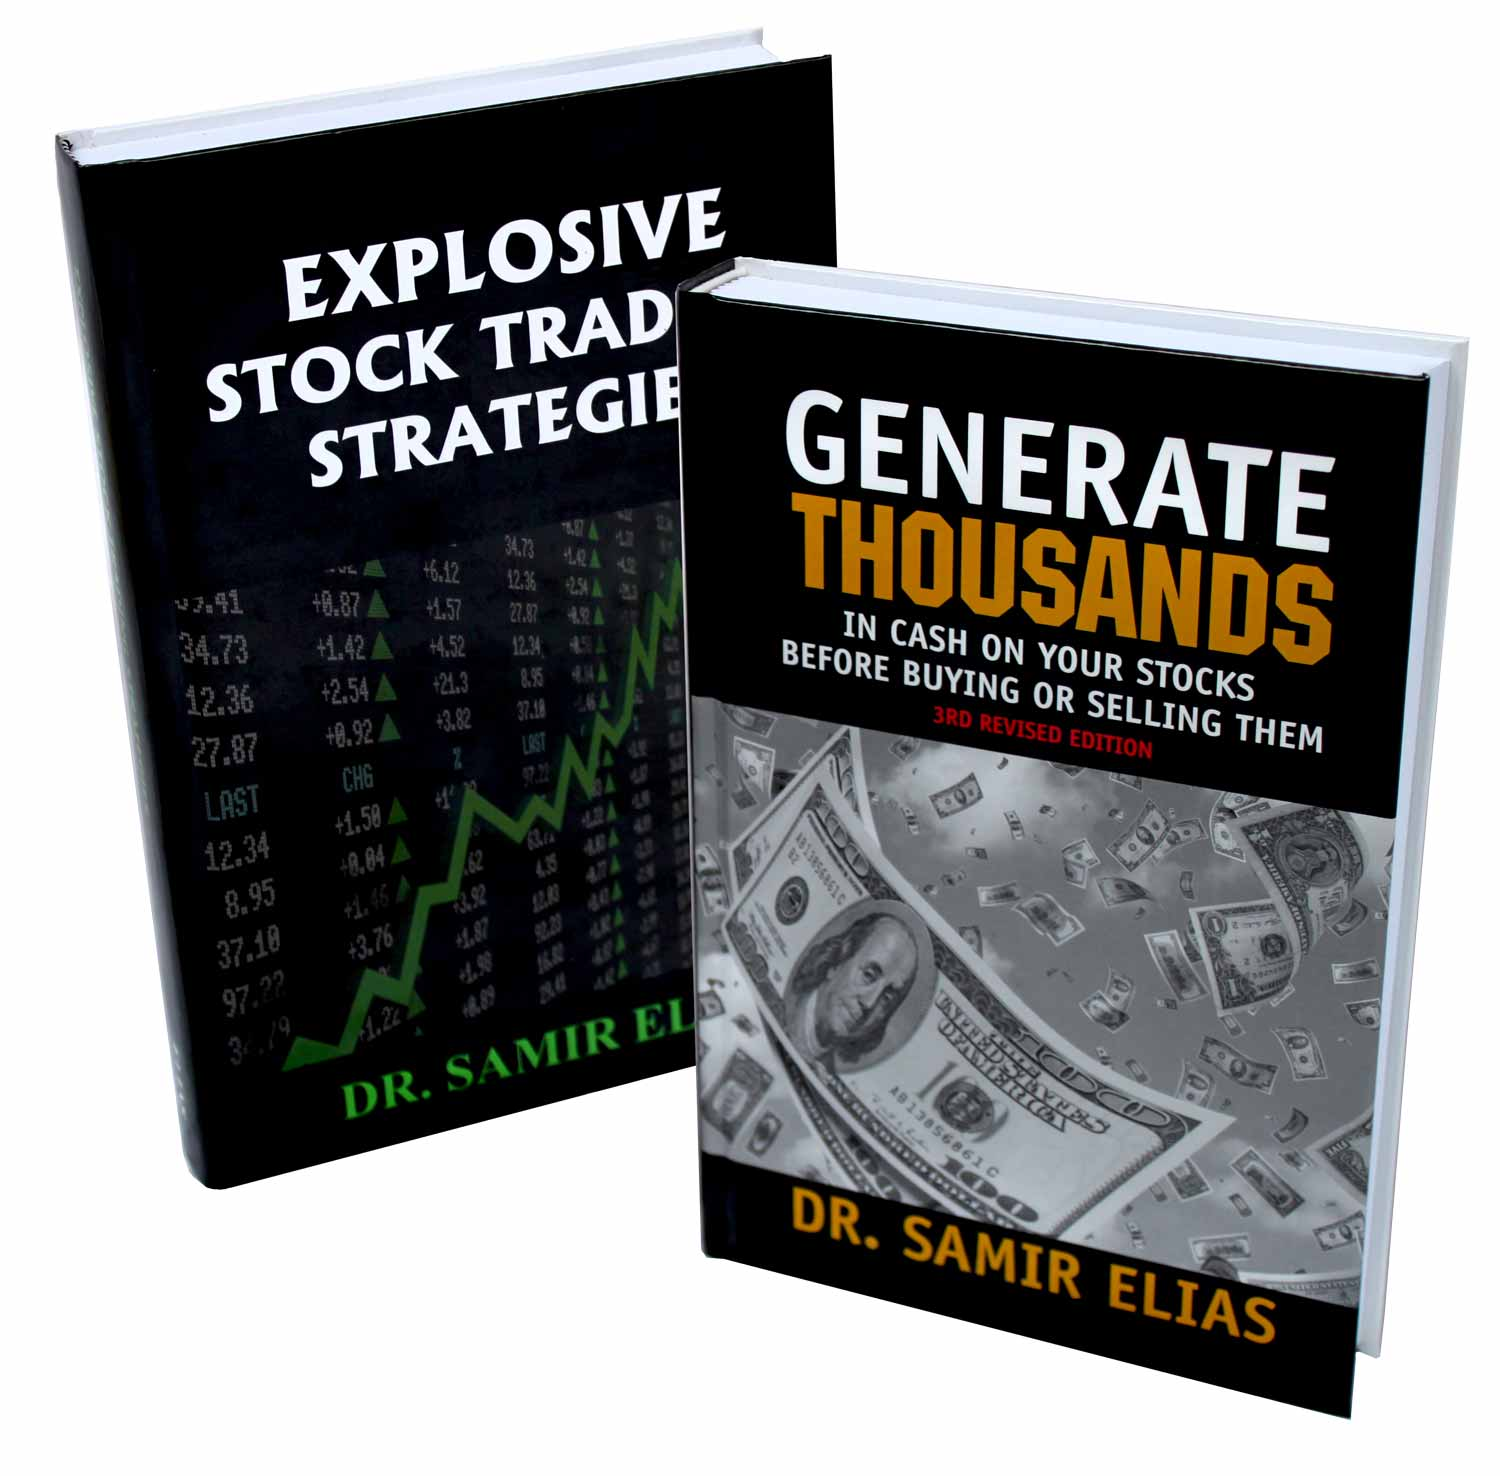 Two stellar books to help you Generate Thousands